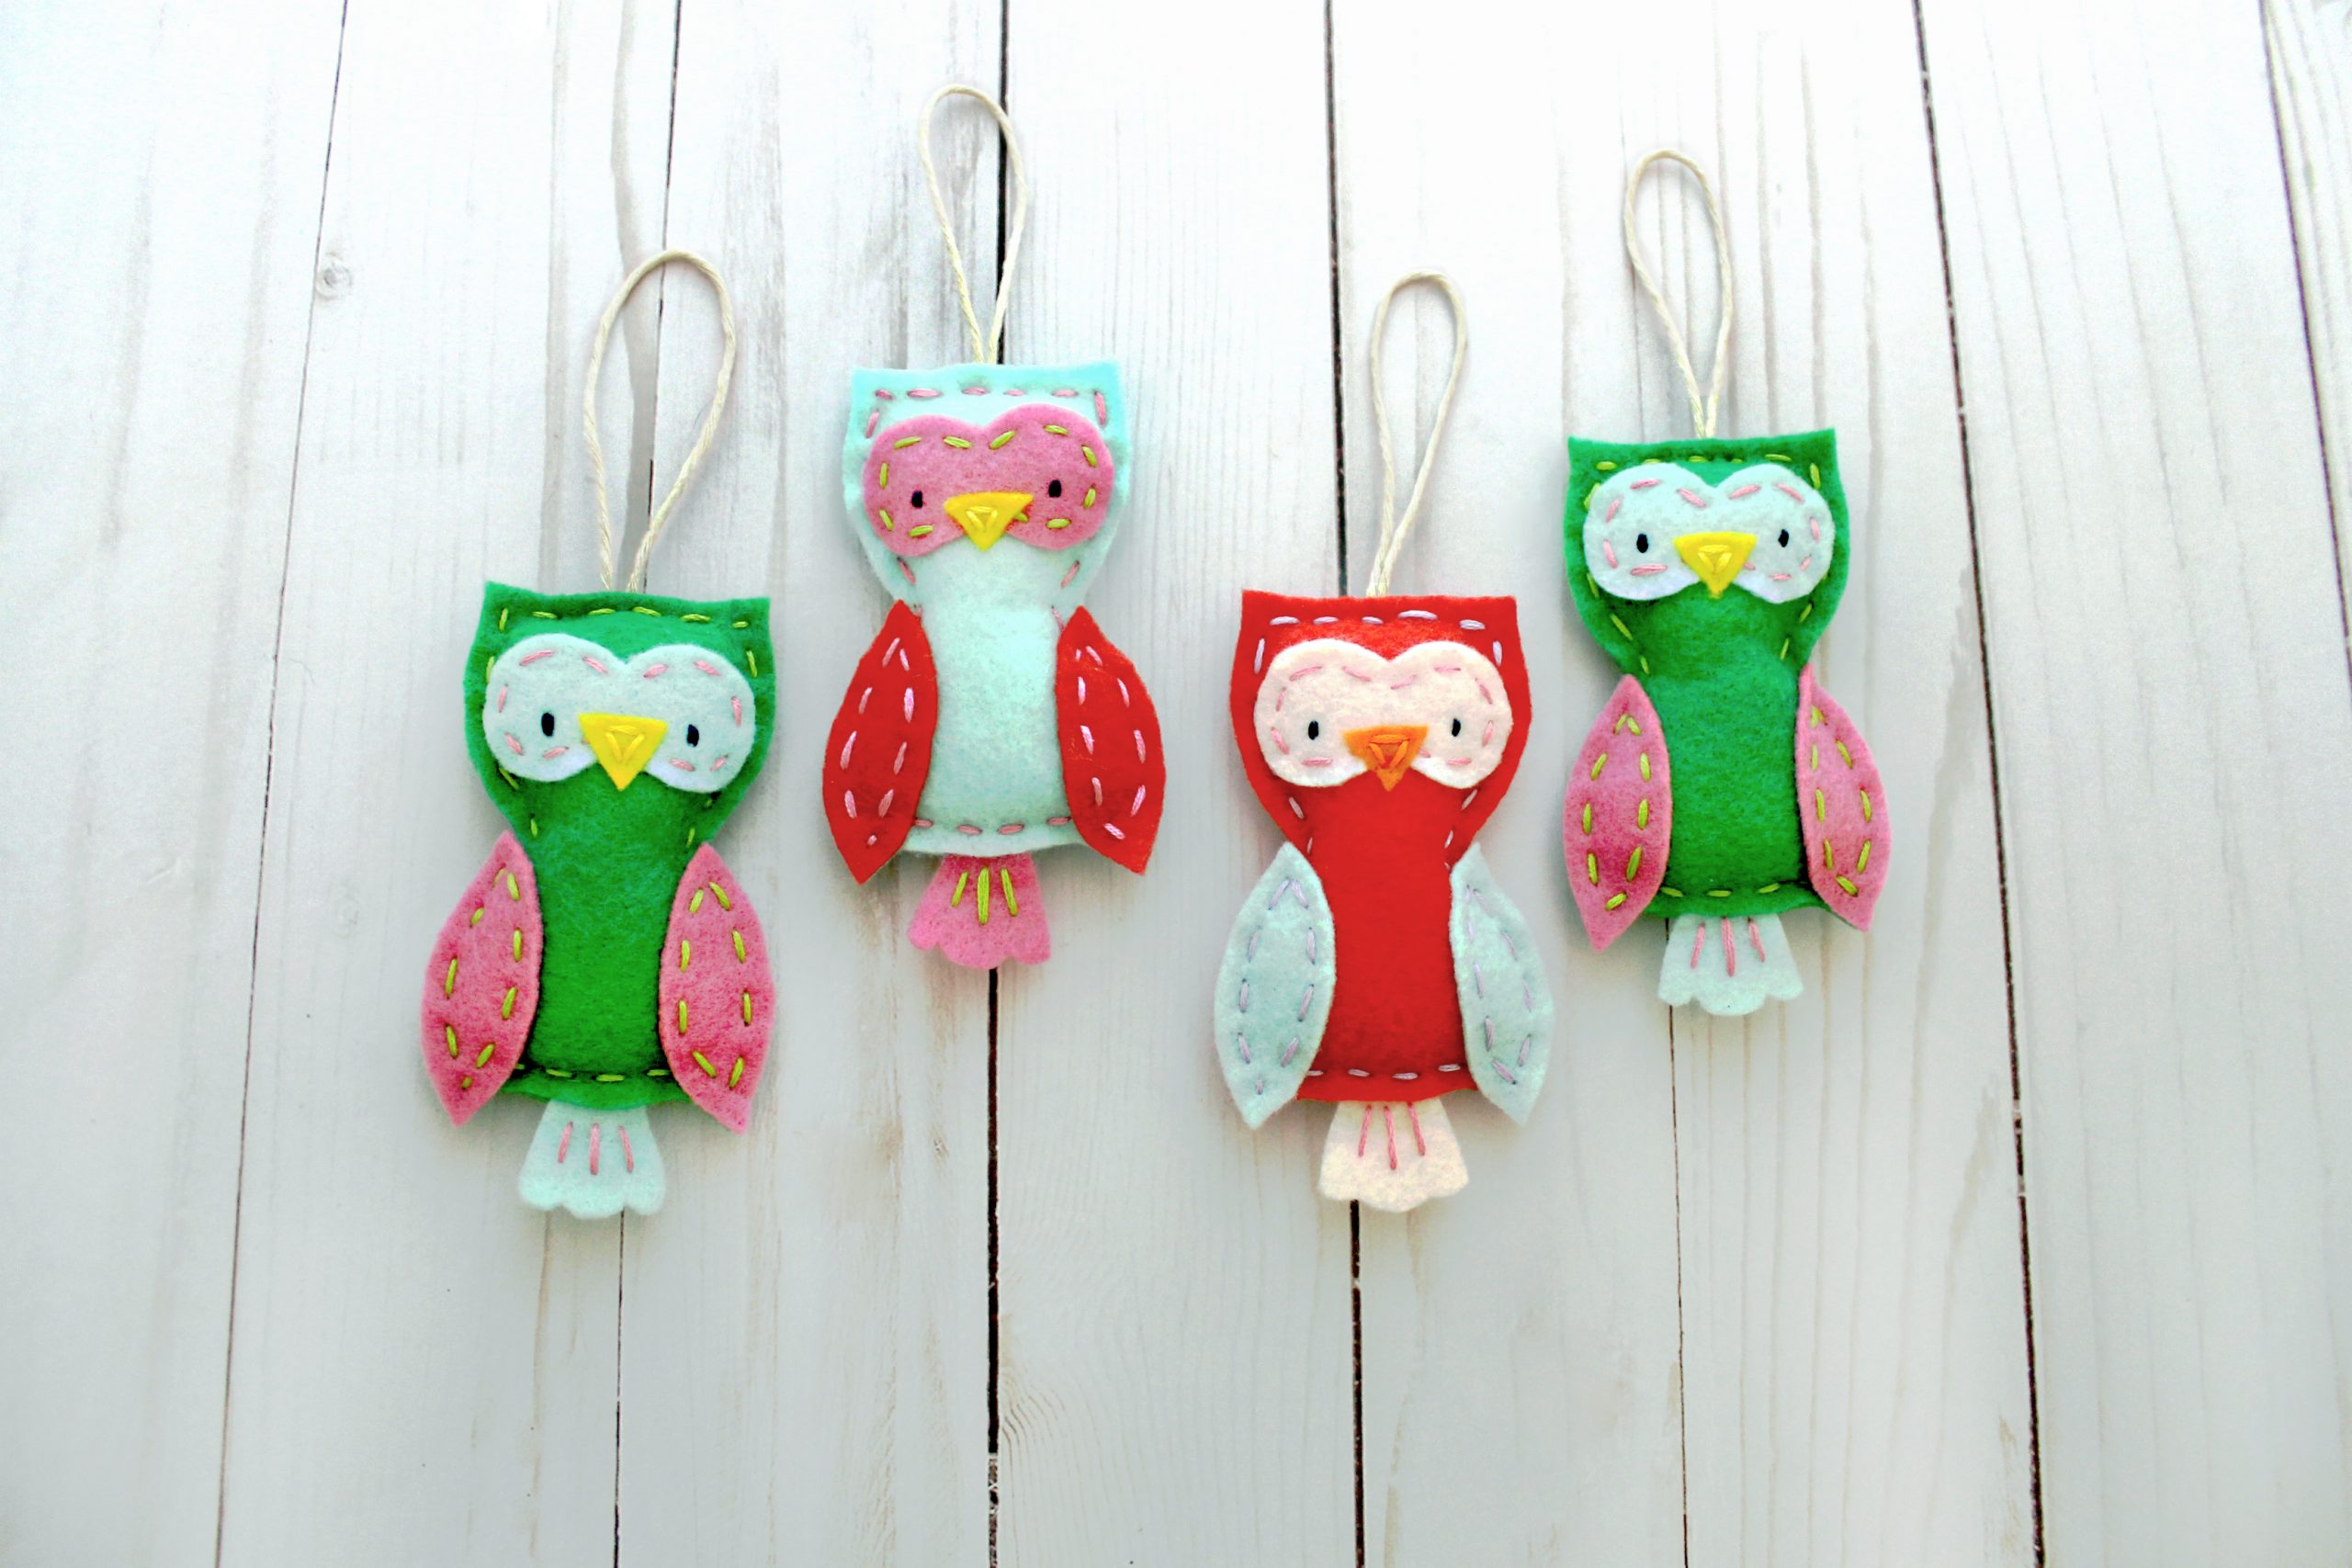 Your Home Needs A Whole Flock Of These Felt Owl Ornaments Craftsy